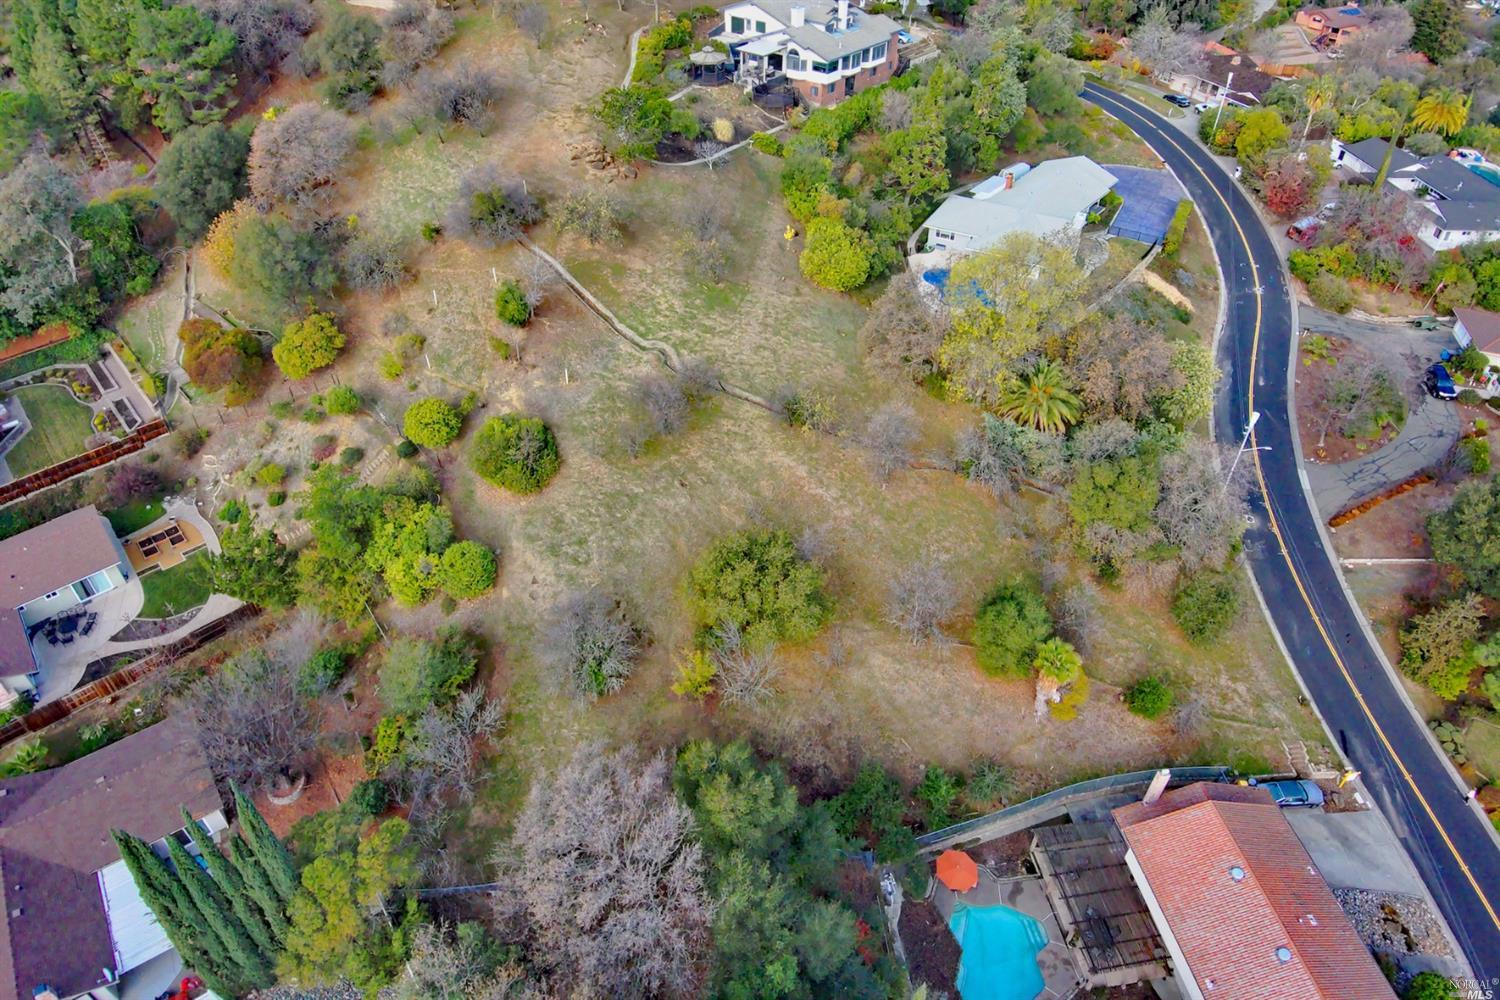 73 Wykoff Drive, Vacaville, CA 95688